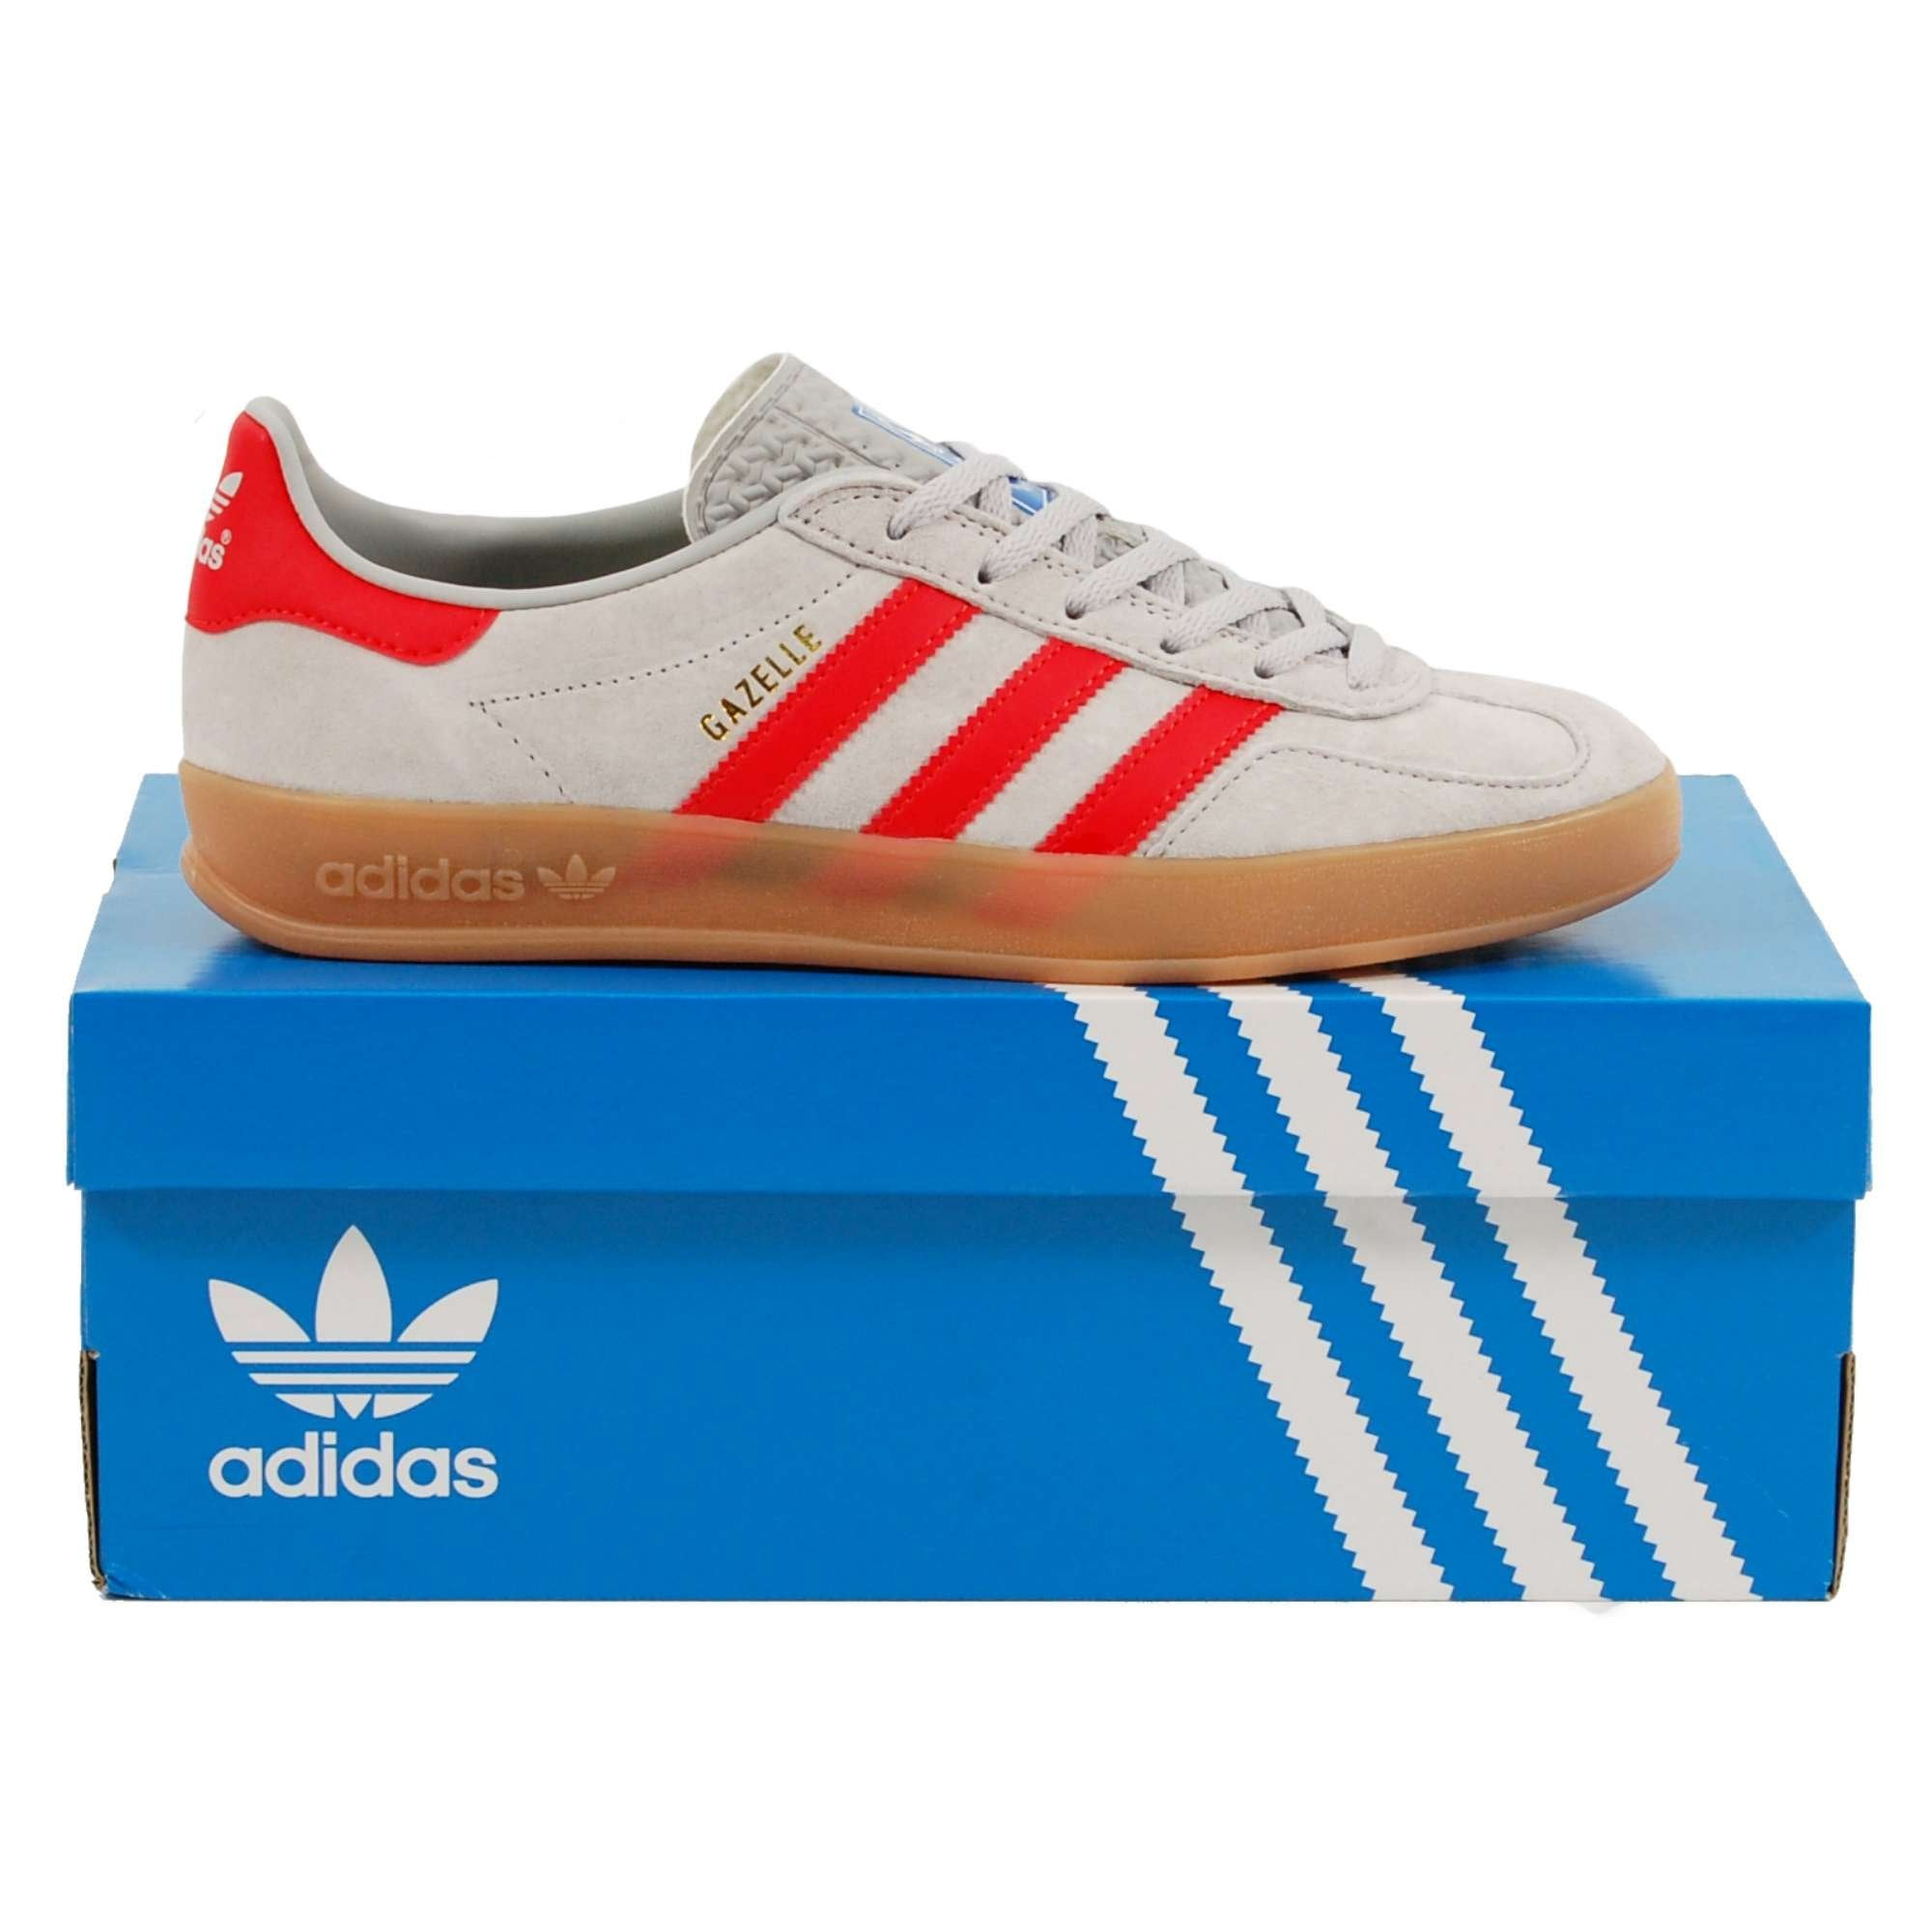 grey and red gazelles